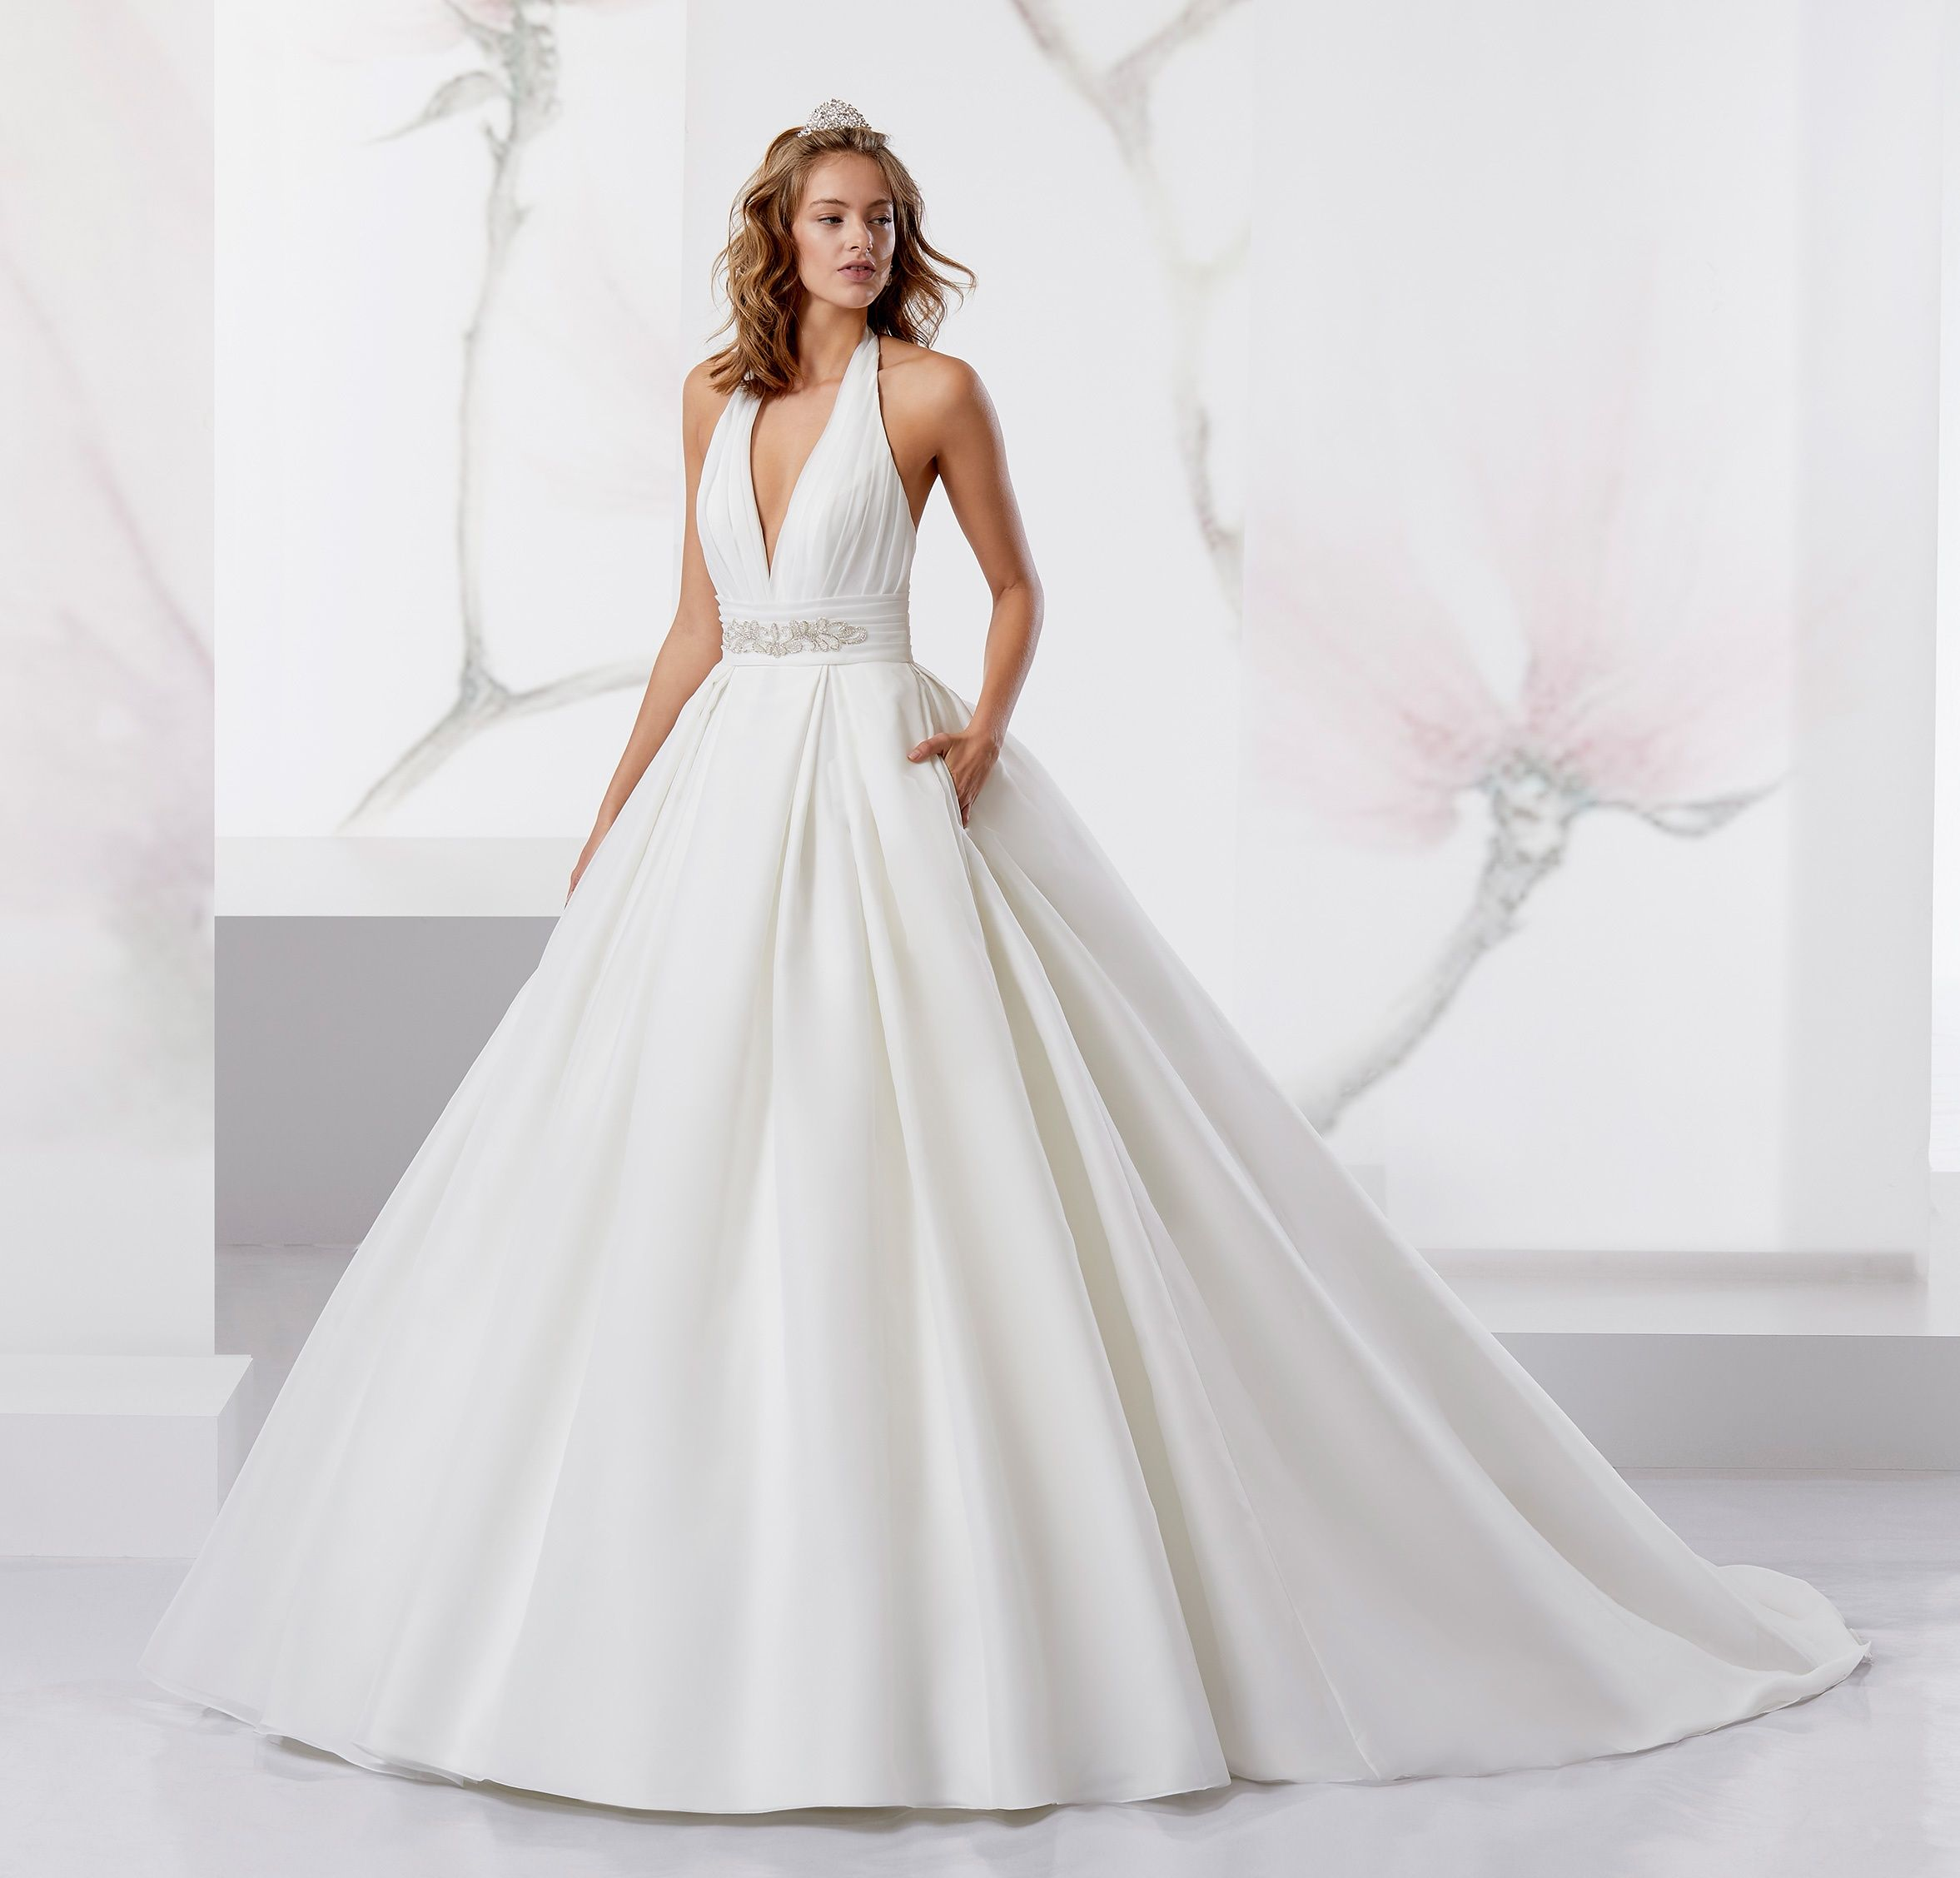 Fashion bride collection jolies joab wedding dress